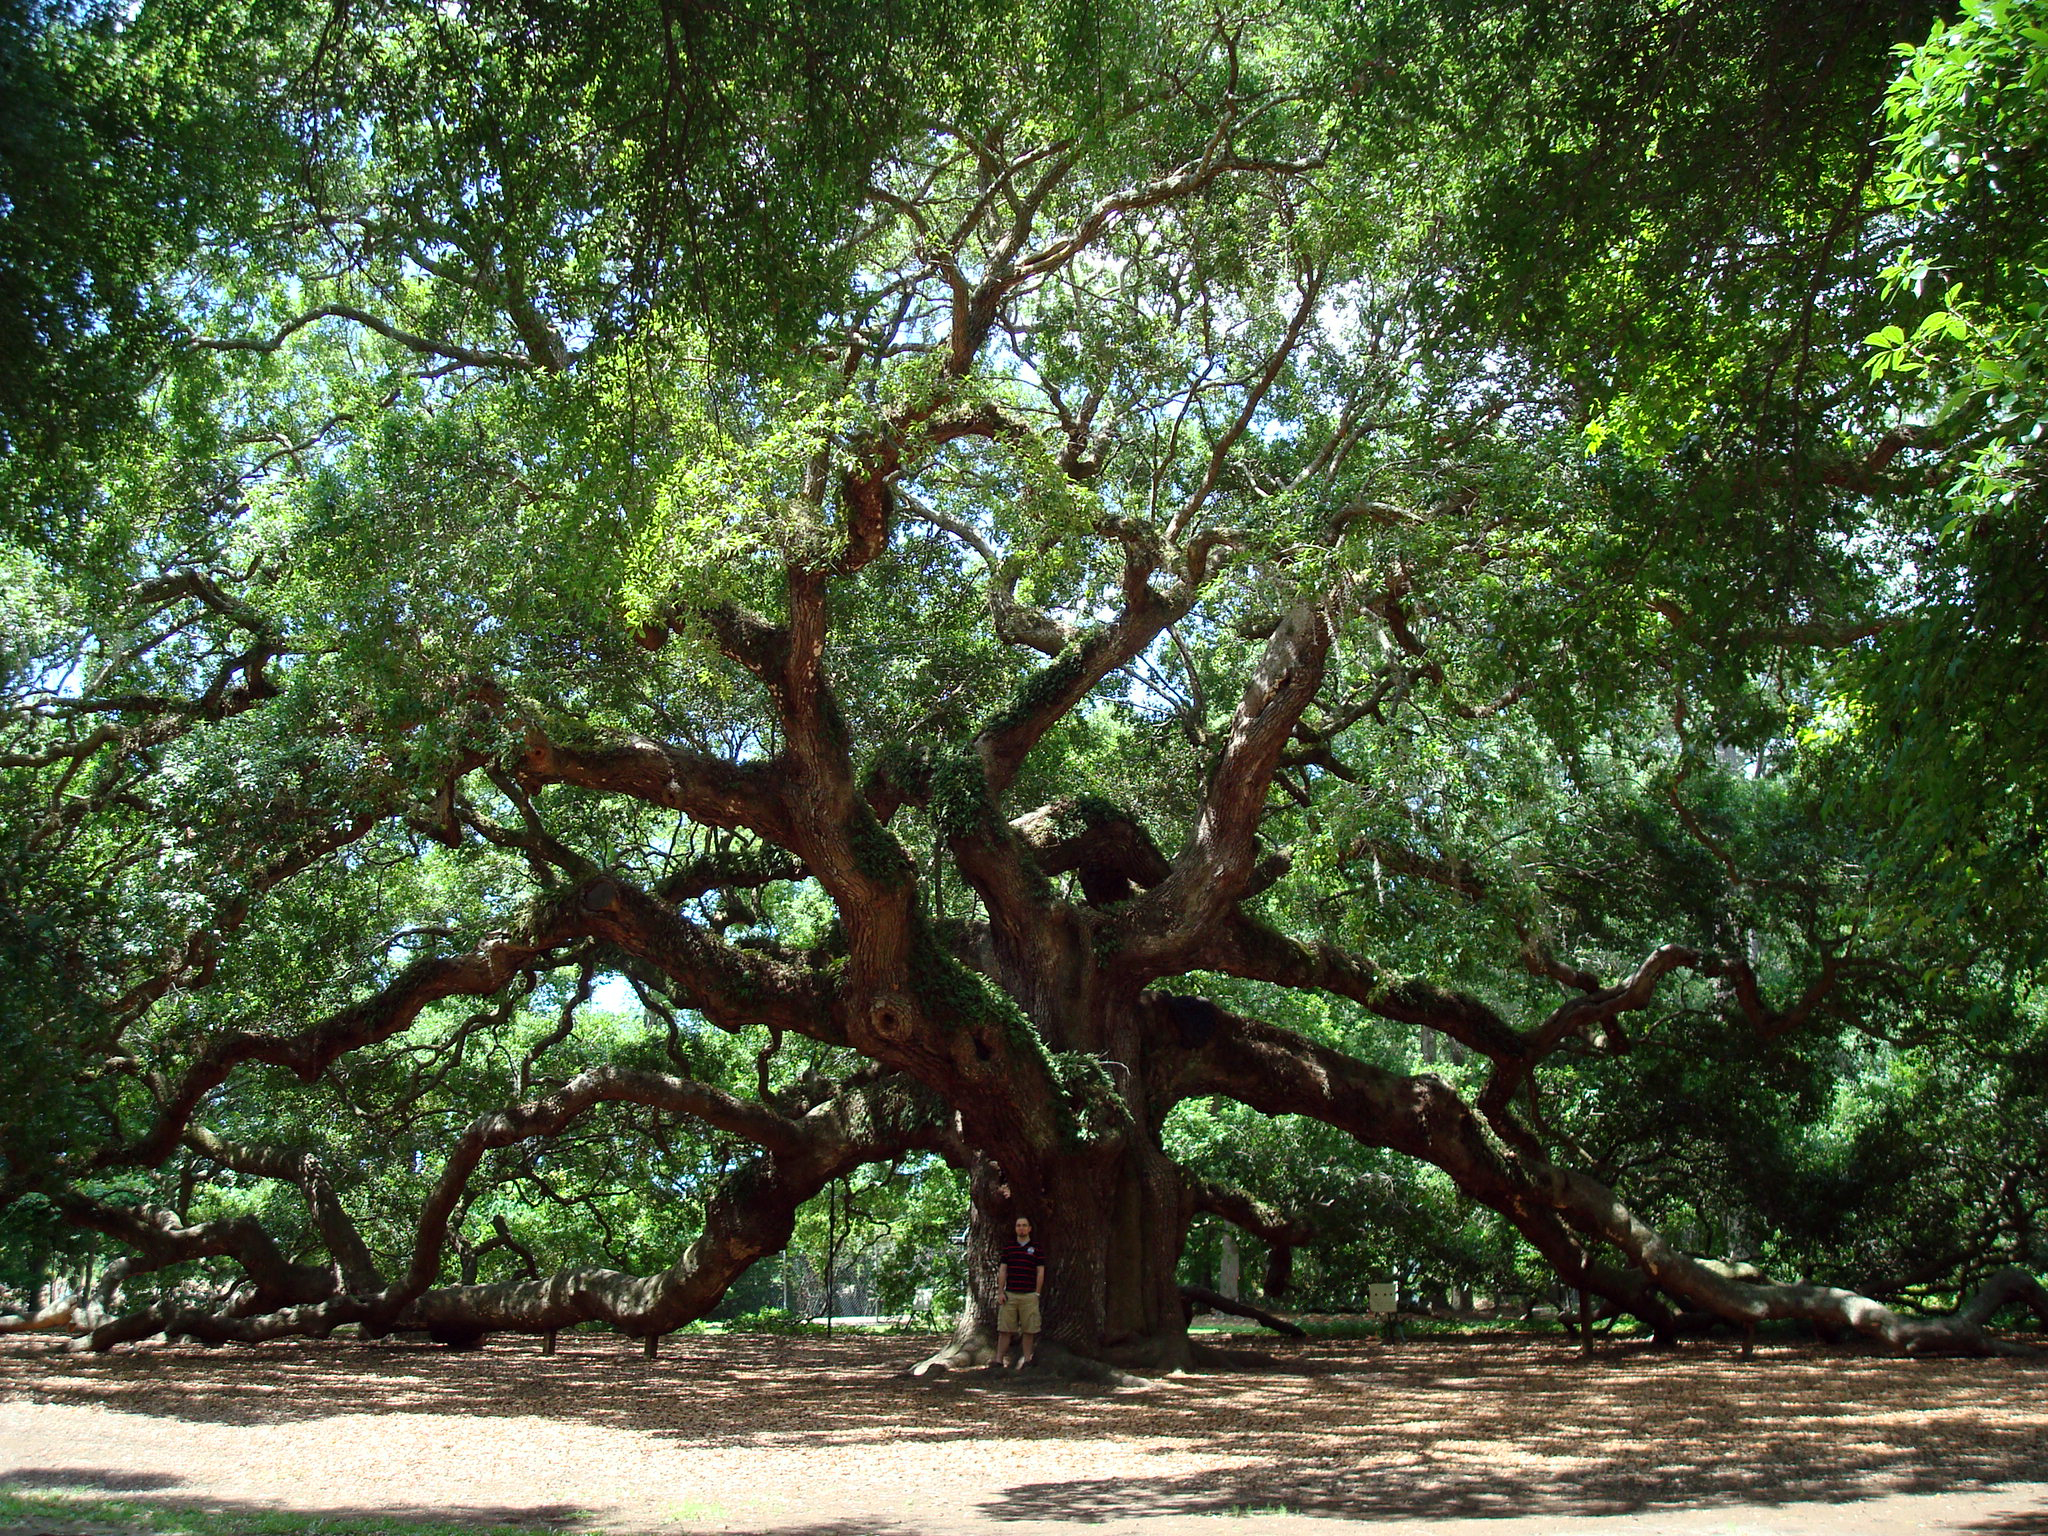 Angel Oak Tree Computer Wallpapers Desktop Backgrounds 2048x1536 2048x1536